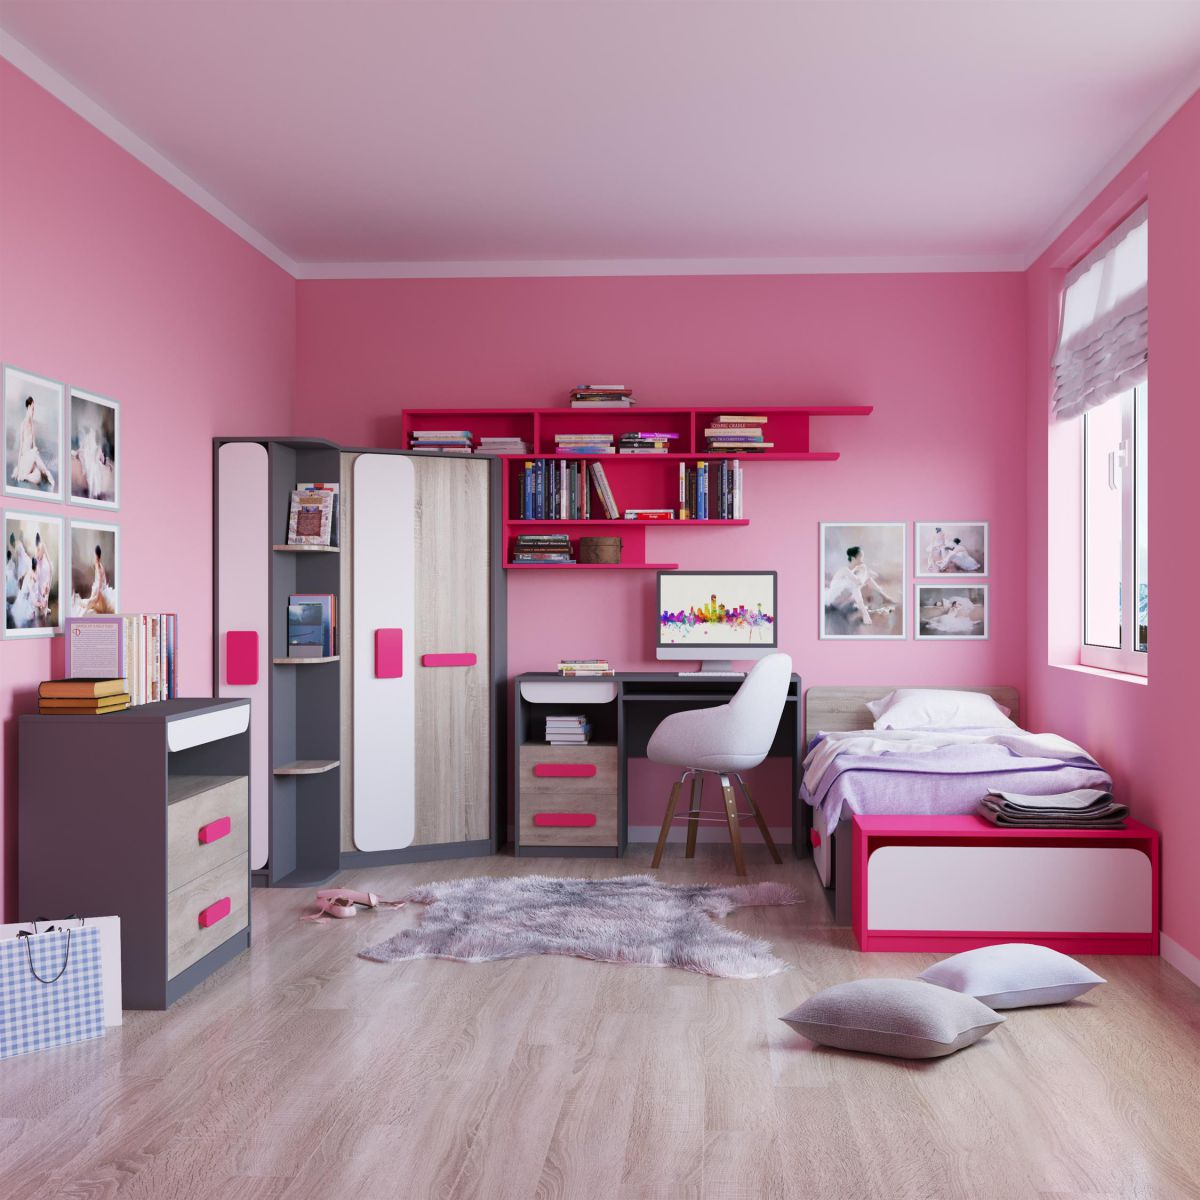 jugendzimmer eckkleiderschrank 7 tlg grau eiche wei pink ebay. Black Bedroom Furniture Sets. Home Design Ideas